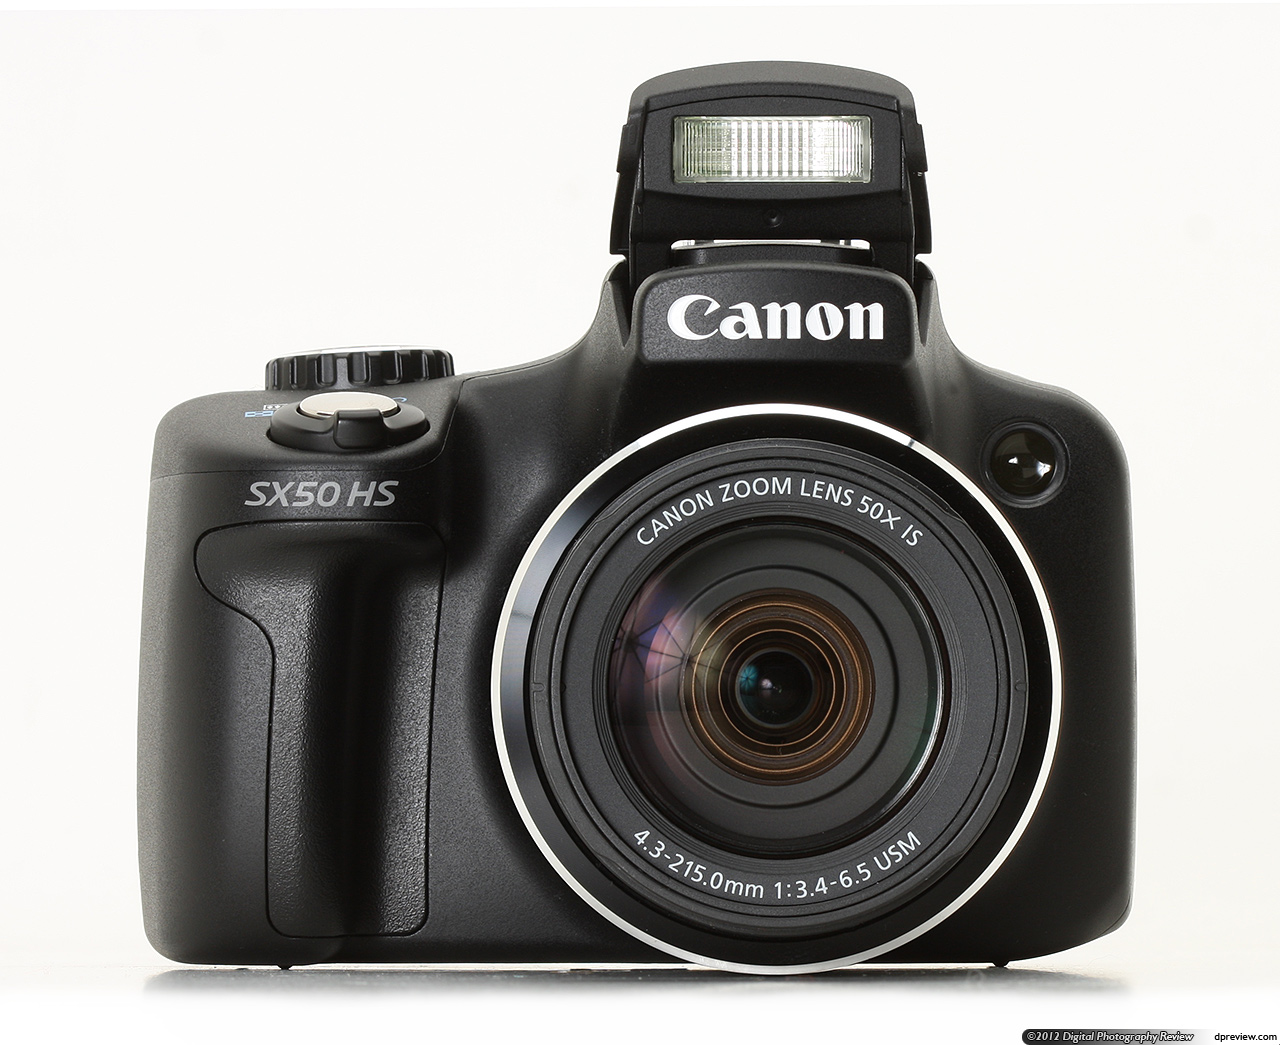 canon powershot sx50 hs review digital photography review. Black Bedroom Furniture Sets. Home Design Ideas